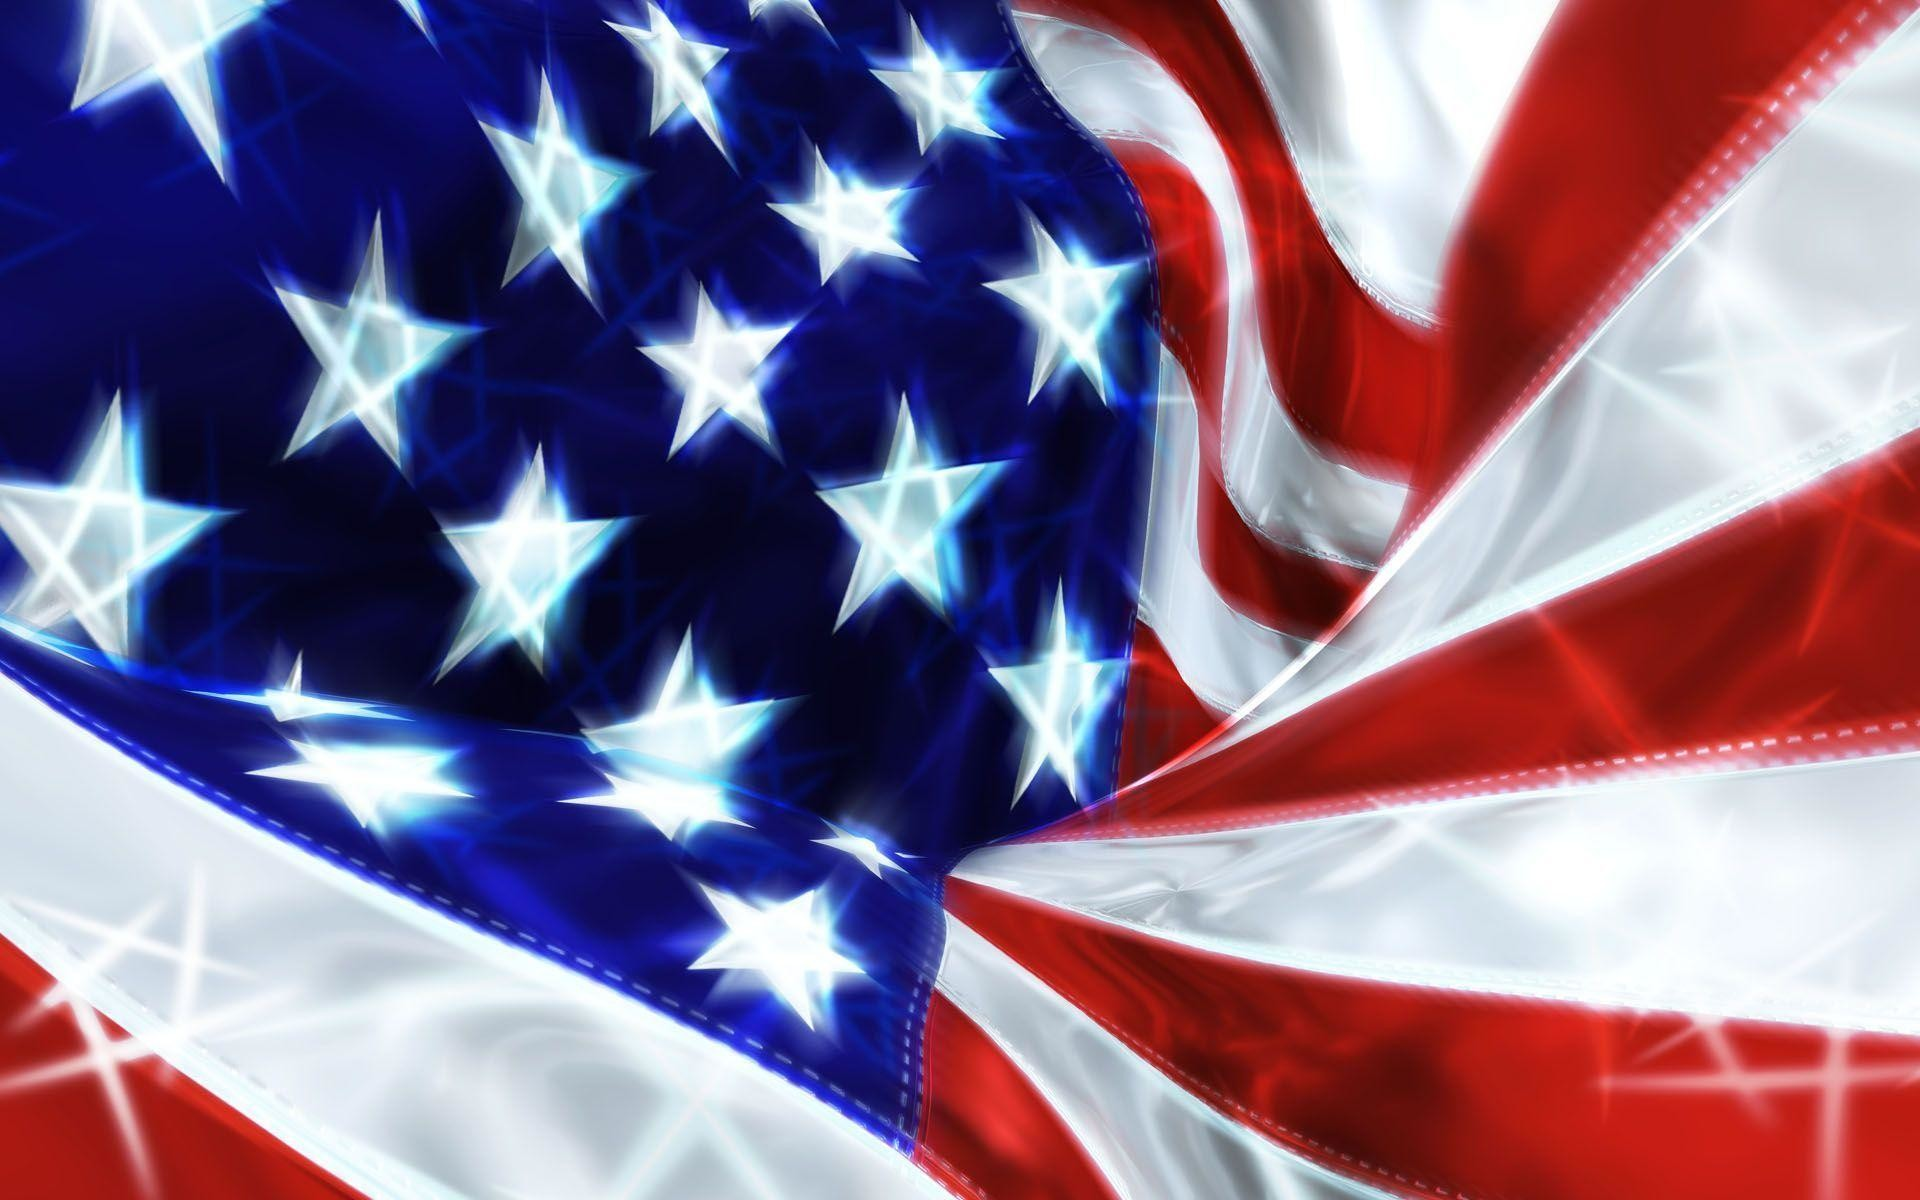 1920x1200 USA Flag Backgrounds - Wallpaper Cave